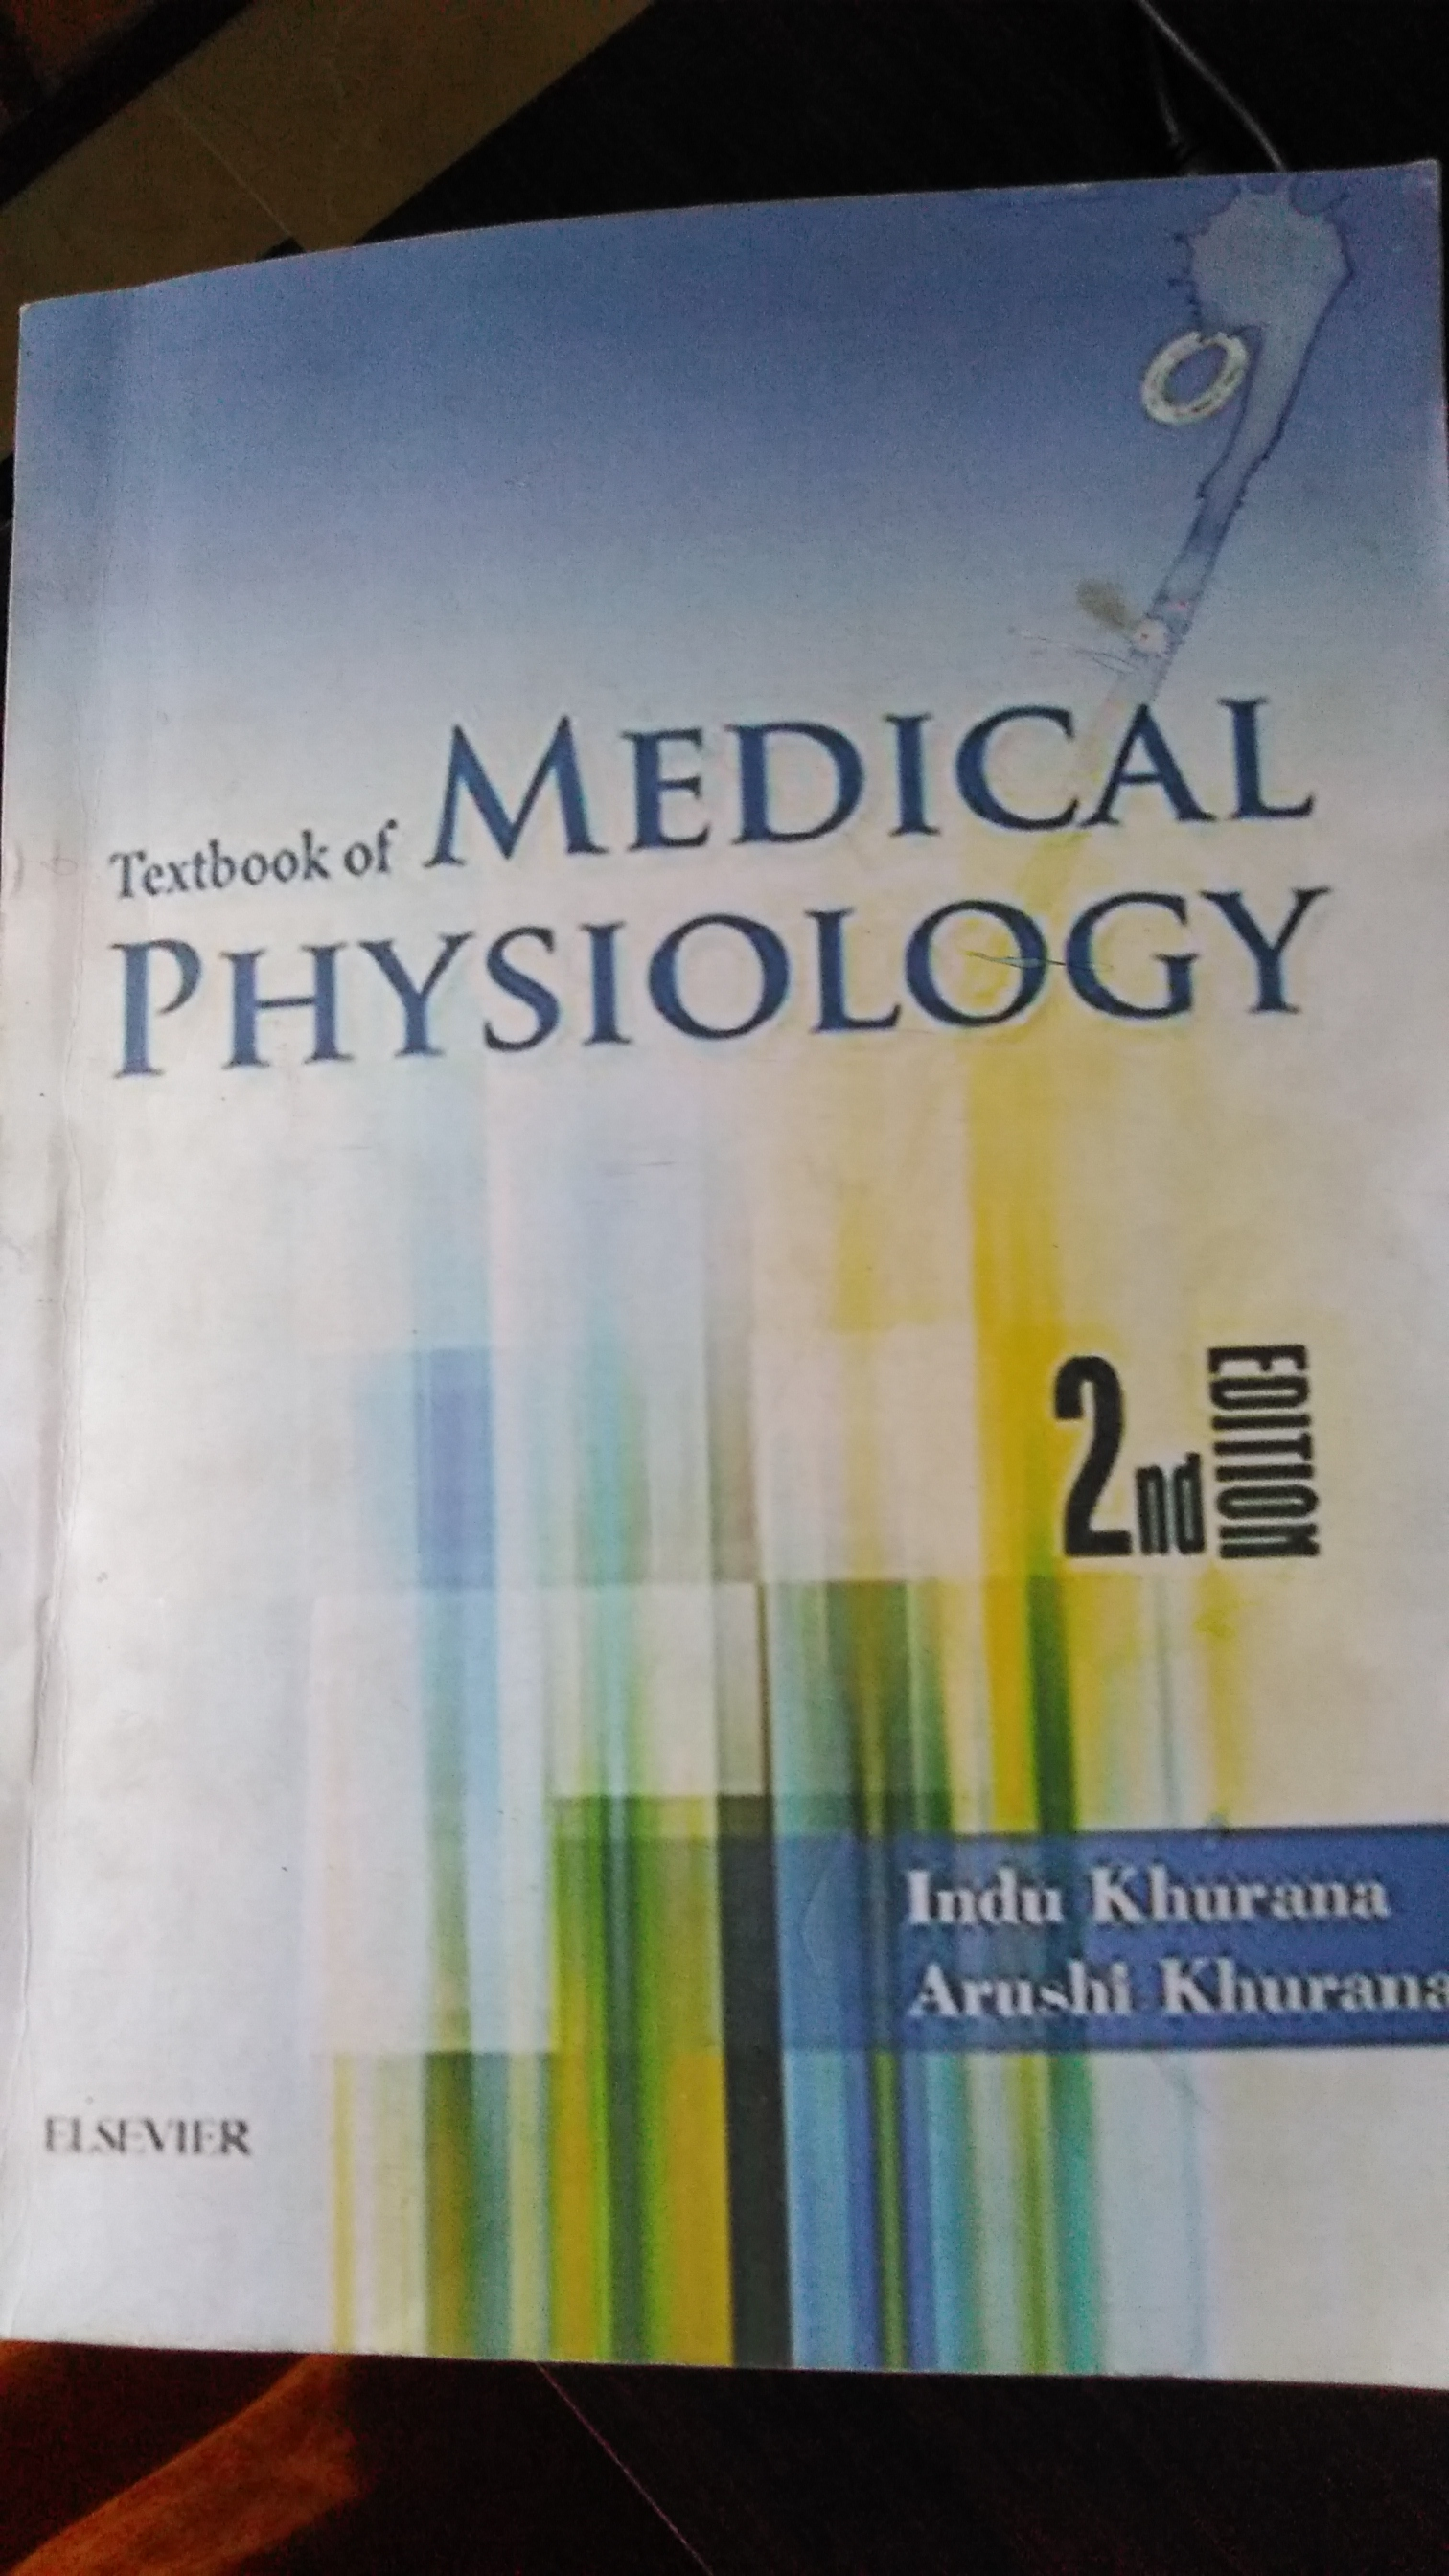 Best Textbooks (Medical) Books Online Buy Sell Marketplace in Pakistan